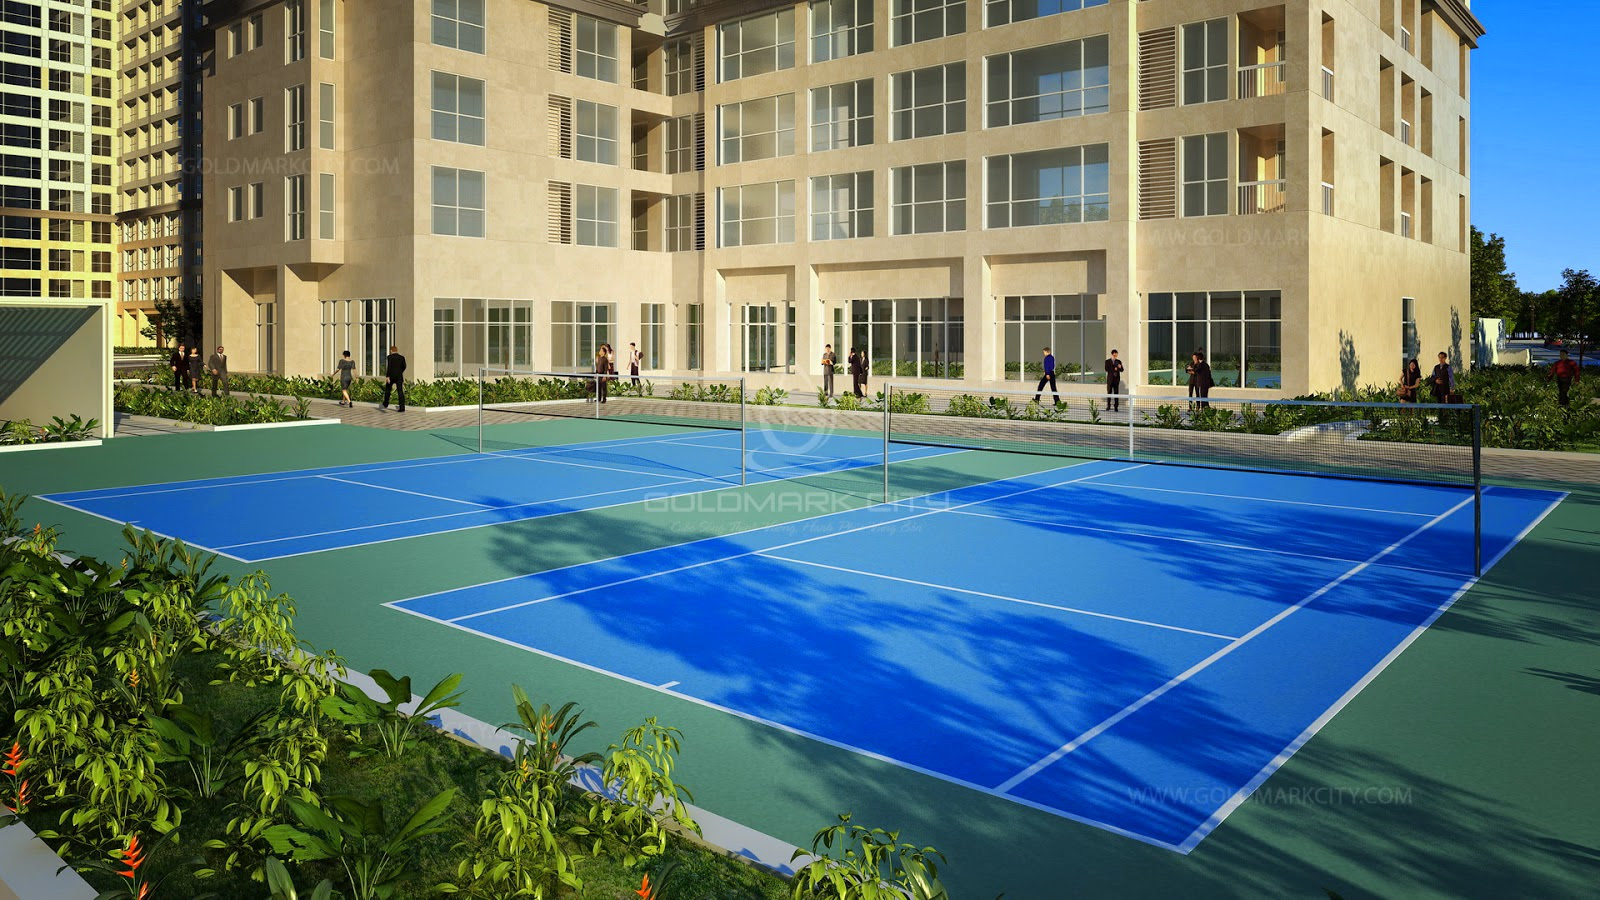 Sân Tennis Goldmark City